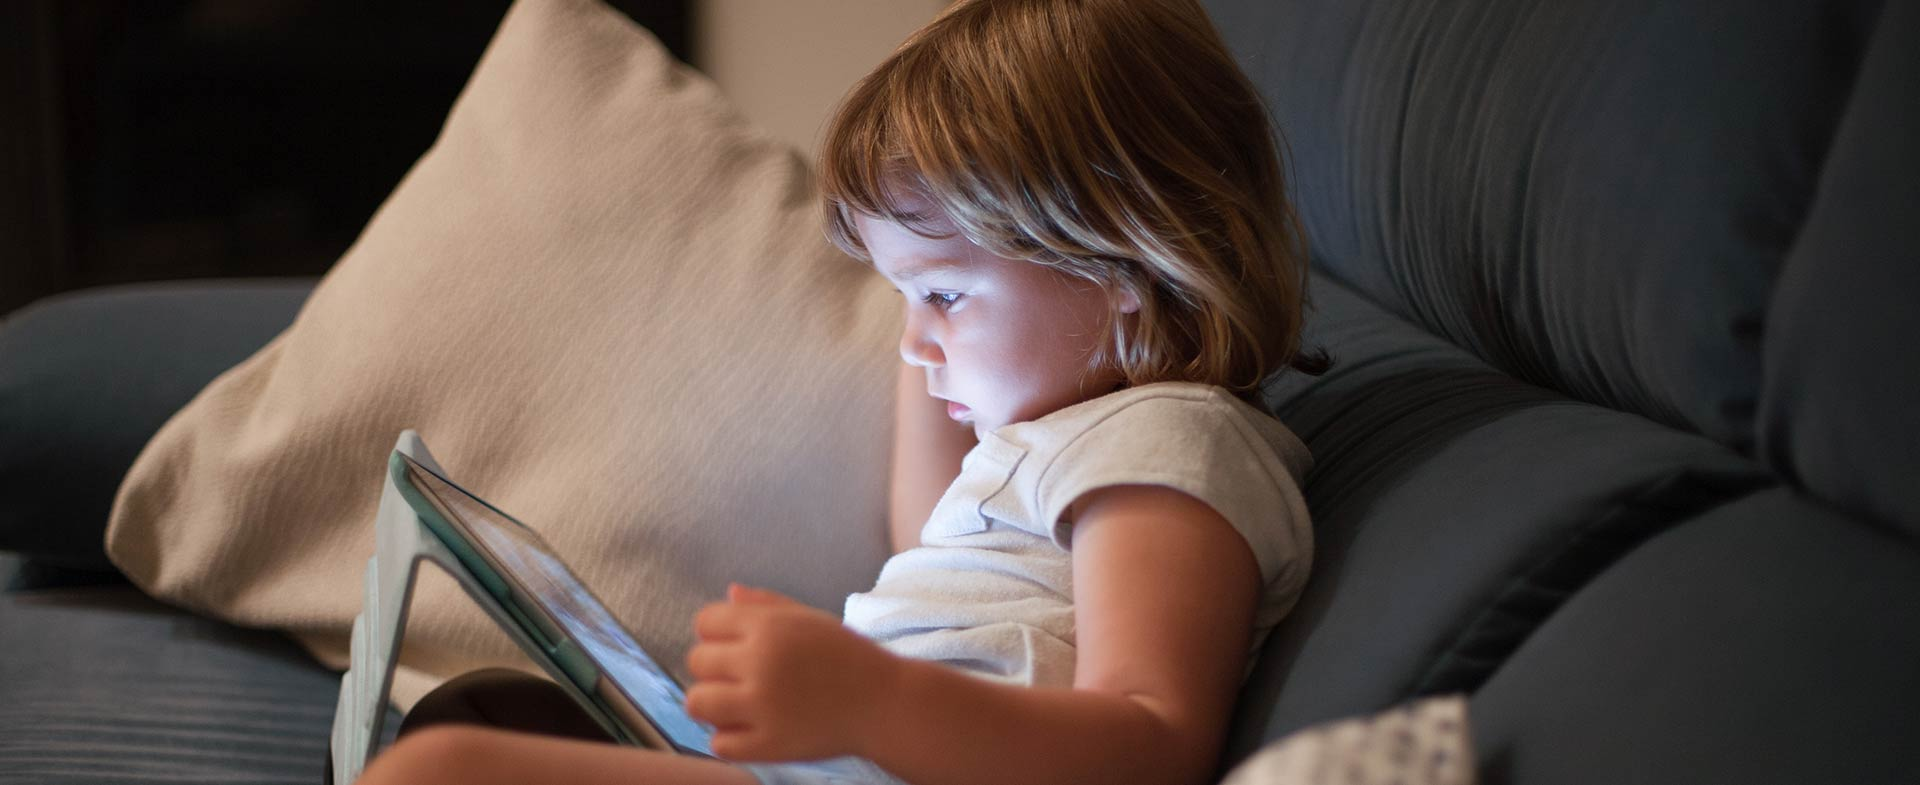 digital devices developmental delays